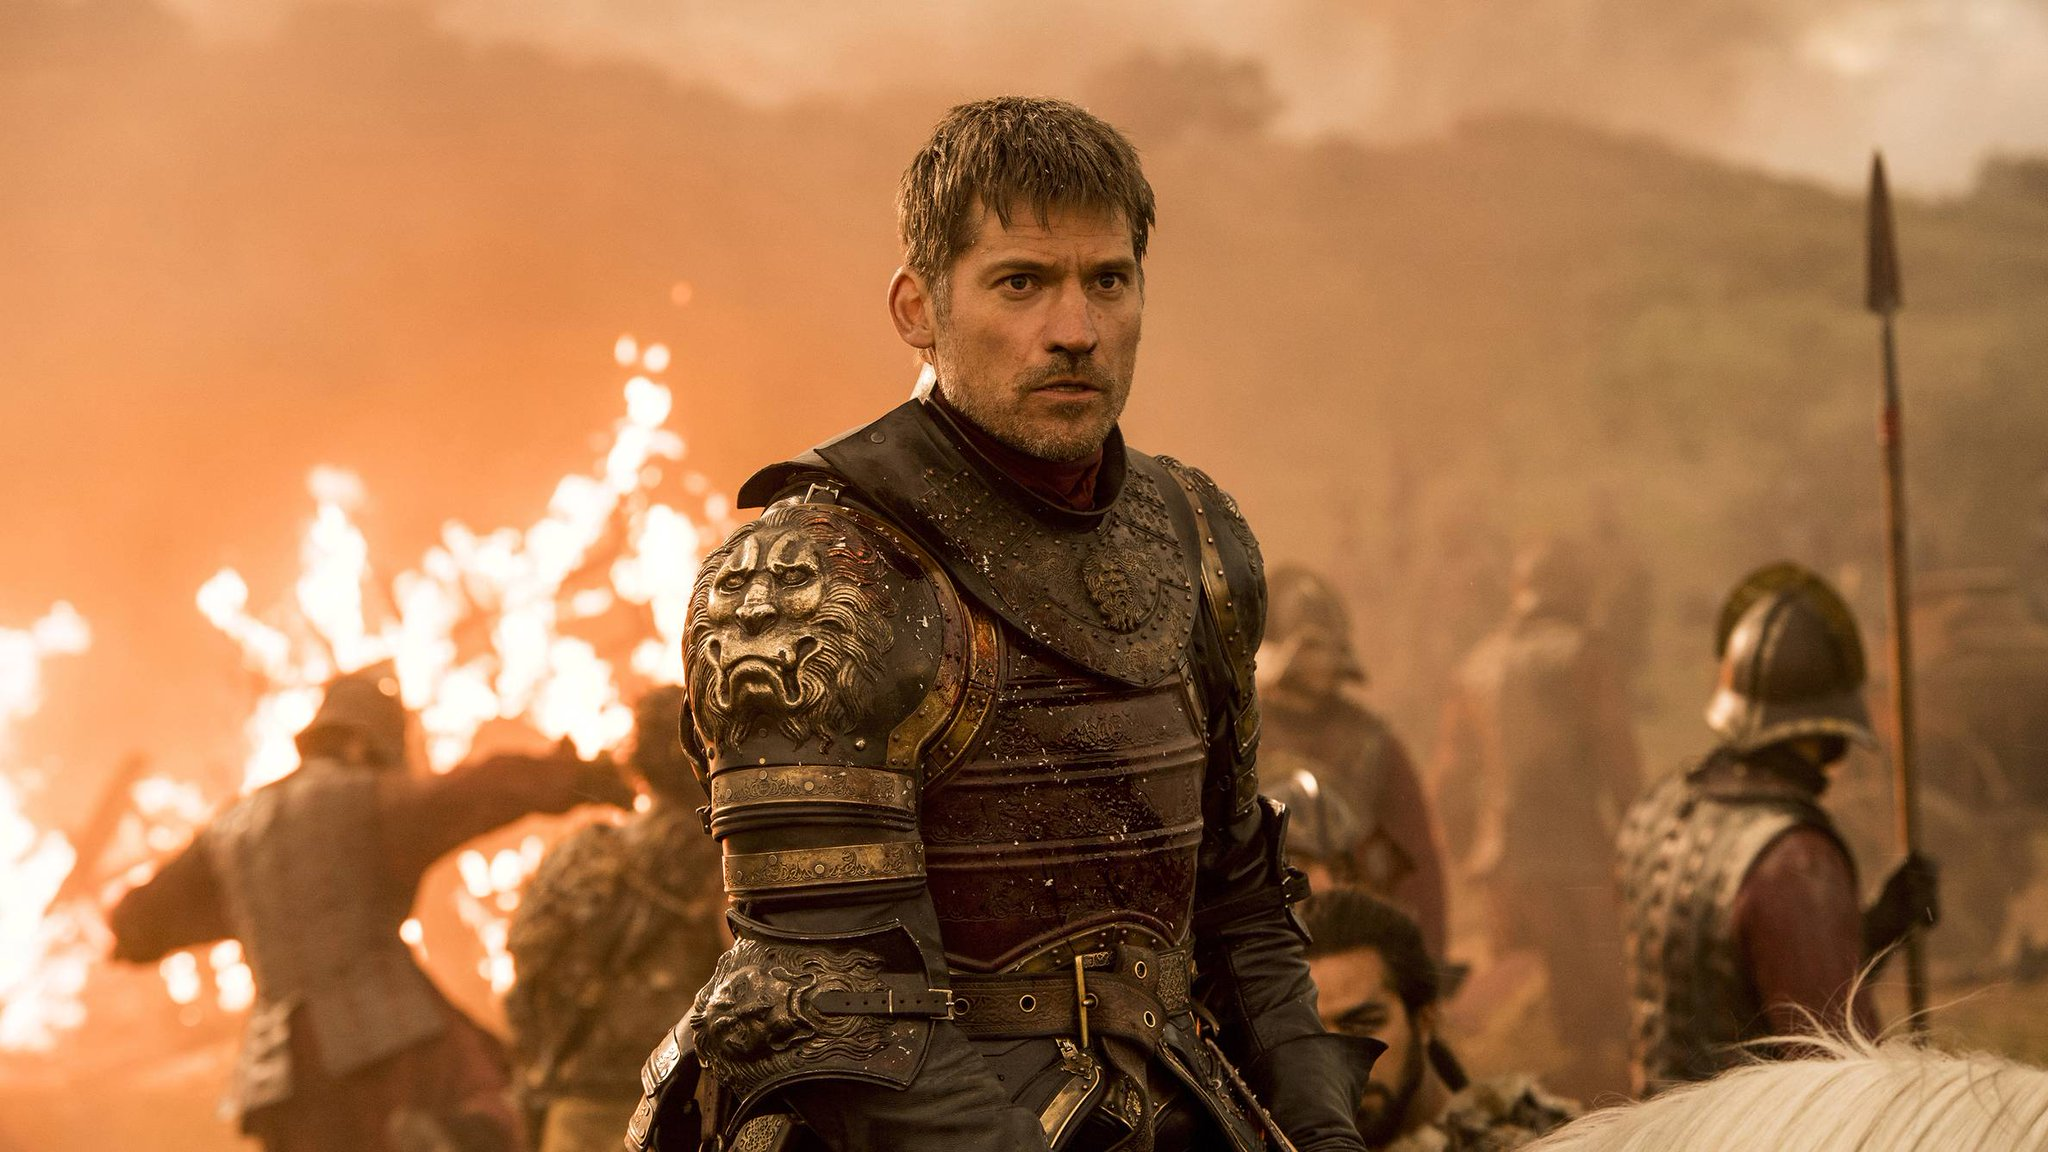 Will Tyrion betray Daenerys to pay his debt to Jaime? And 6 more #GameOfThrones questions: https://t.co/qqubL5tGr0 https://t.co/saFXNxxKE8